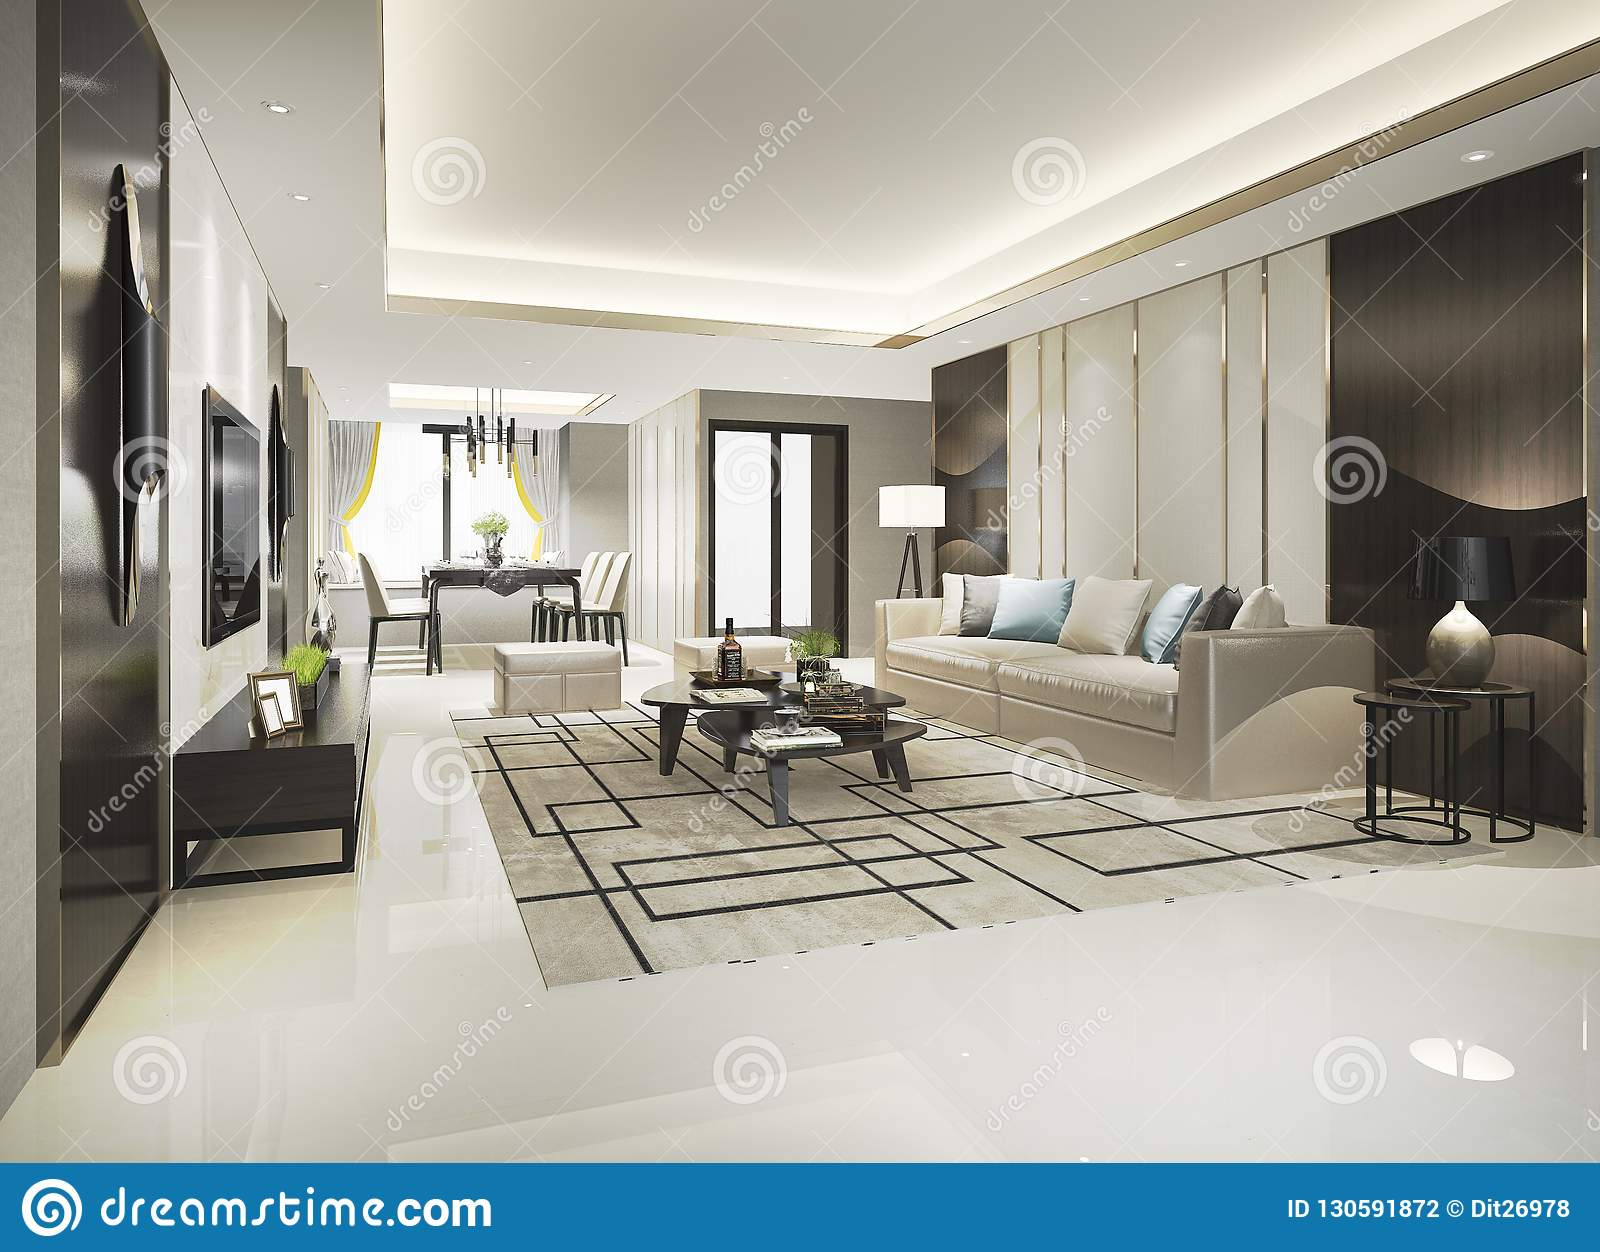 3d Rendering Modern Dining Room And Living Room With Luxury Decor Stock Illustration Illustration Of Decor Building 130591872